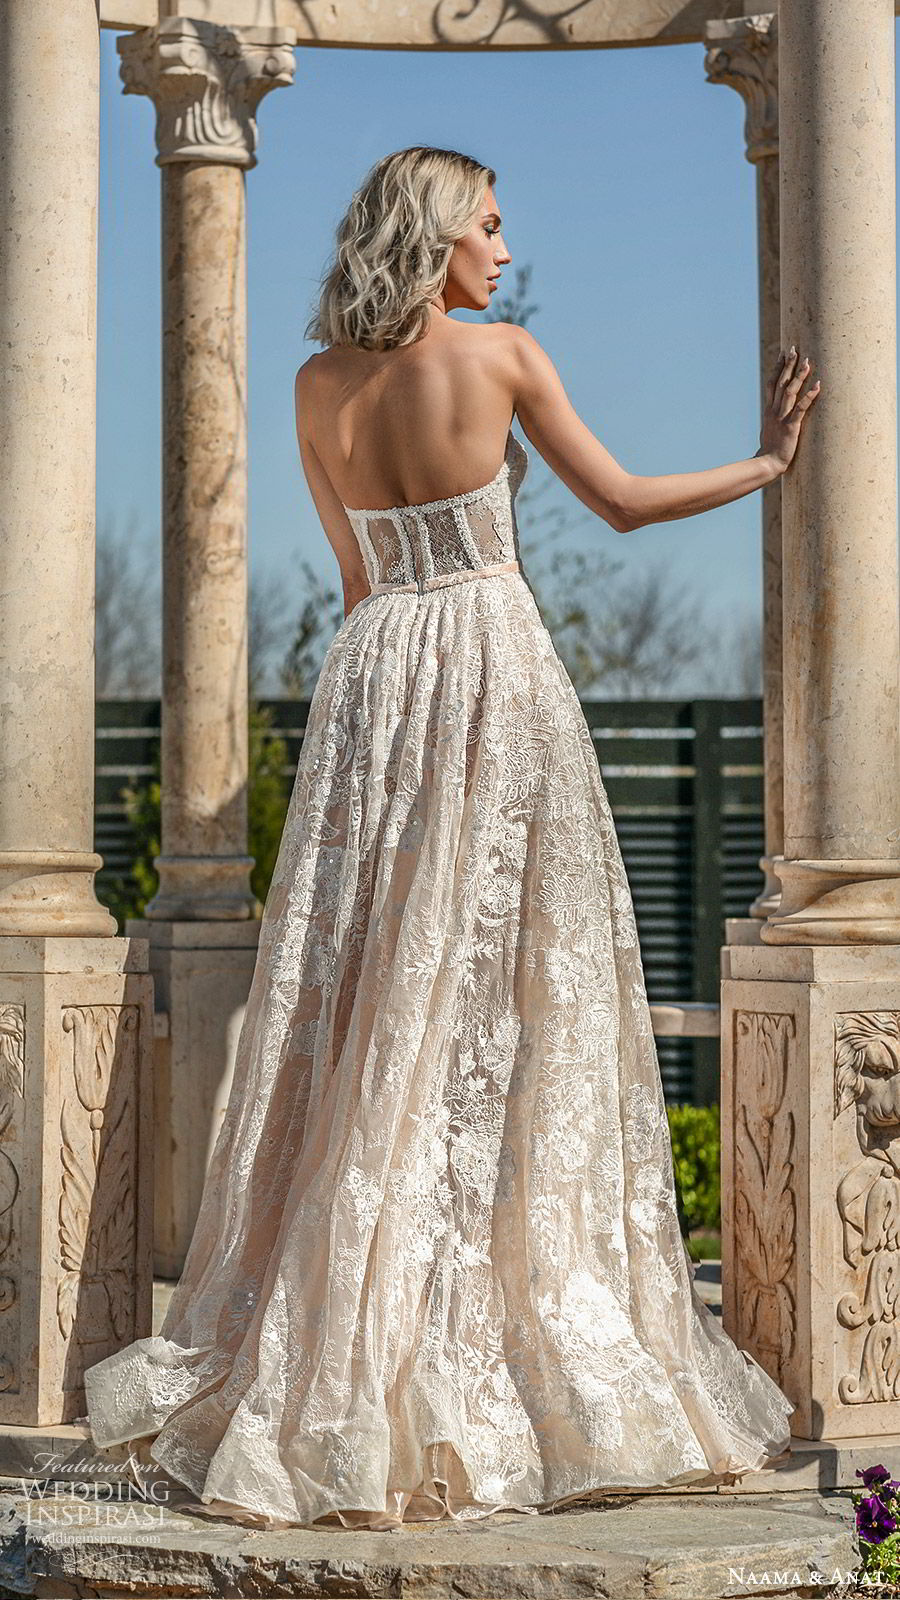 naama anat spring 2020 bridal strapless sweetheart fully embellished a line ball gown wedding dress (3) sweep train romantic elegant bv